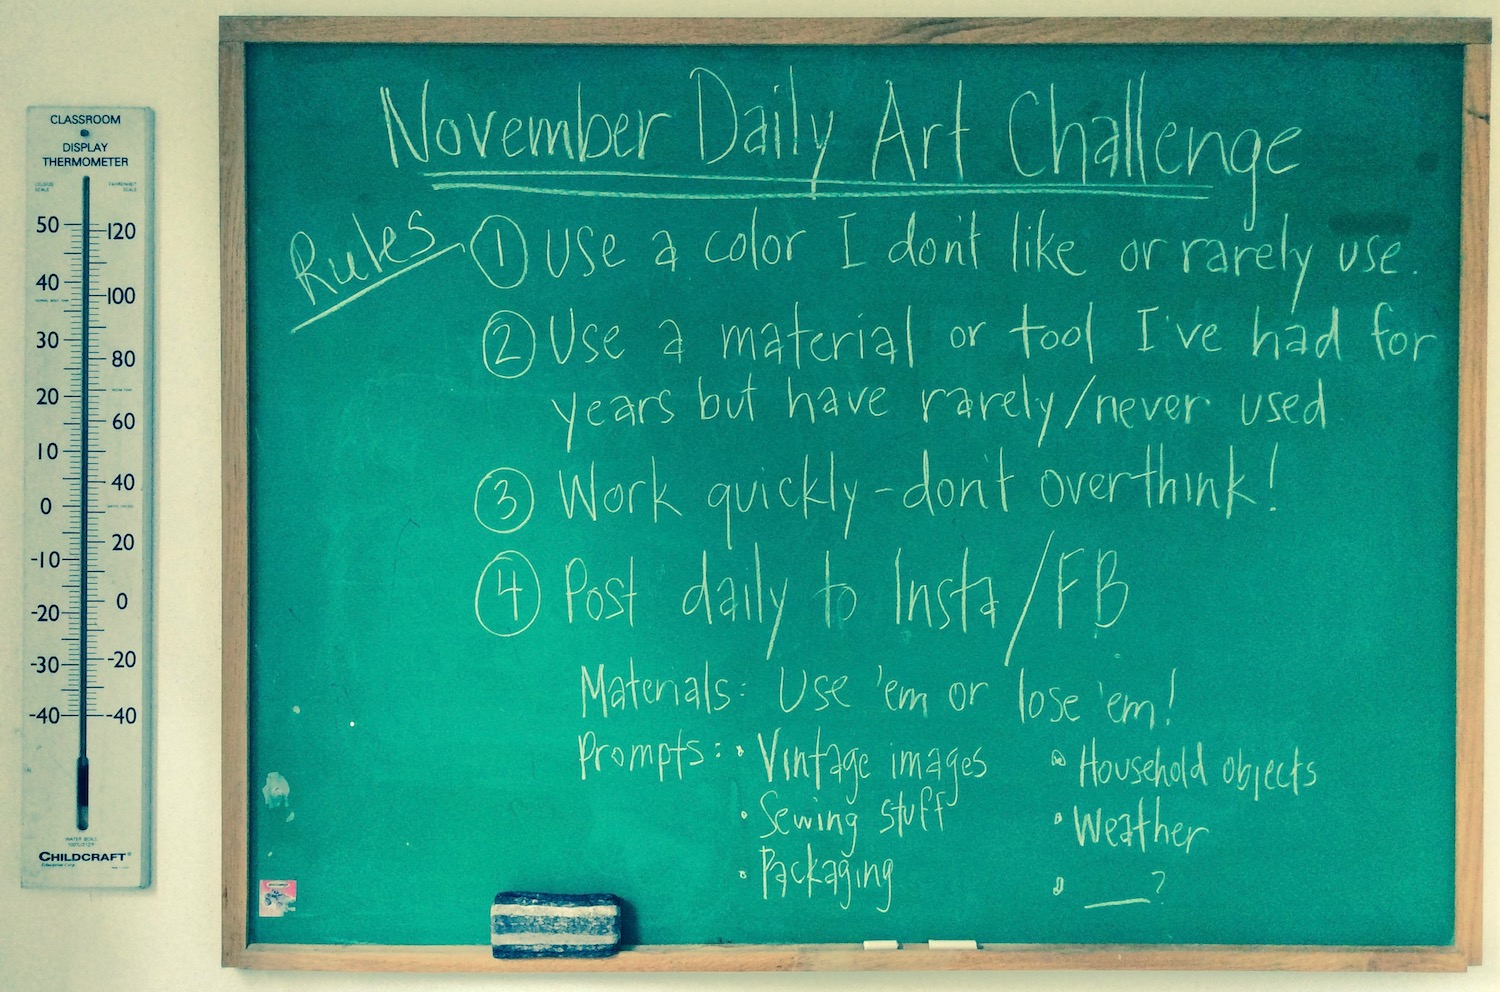 rules of November Daily Art Challenge